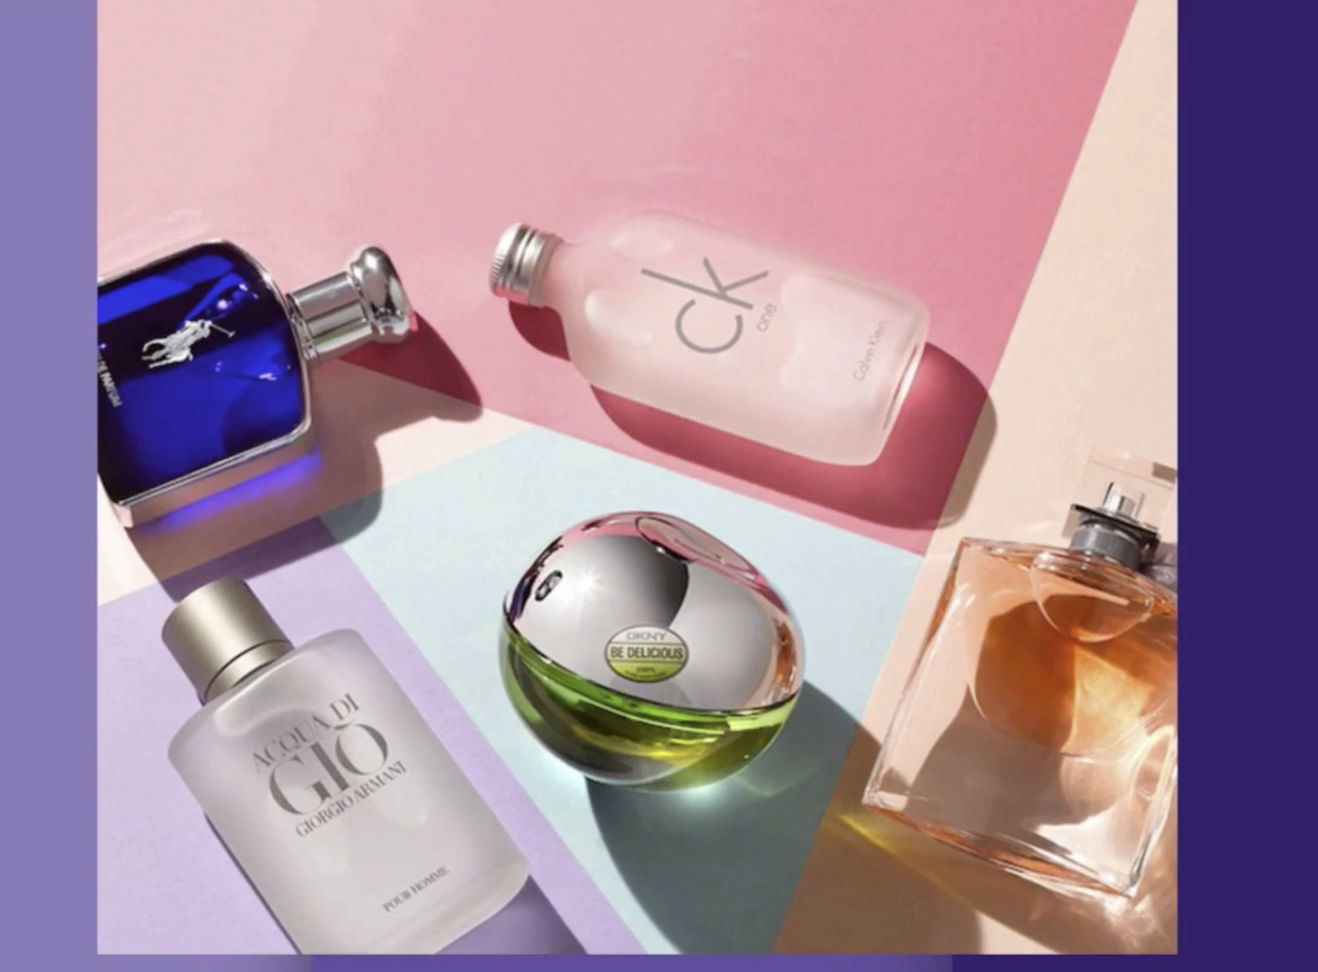 Perfume has been used as a test for base pricing among consumers.